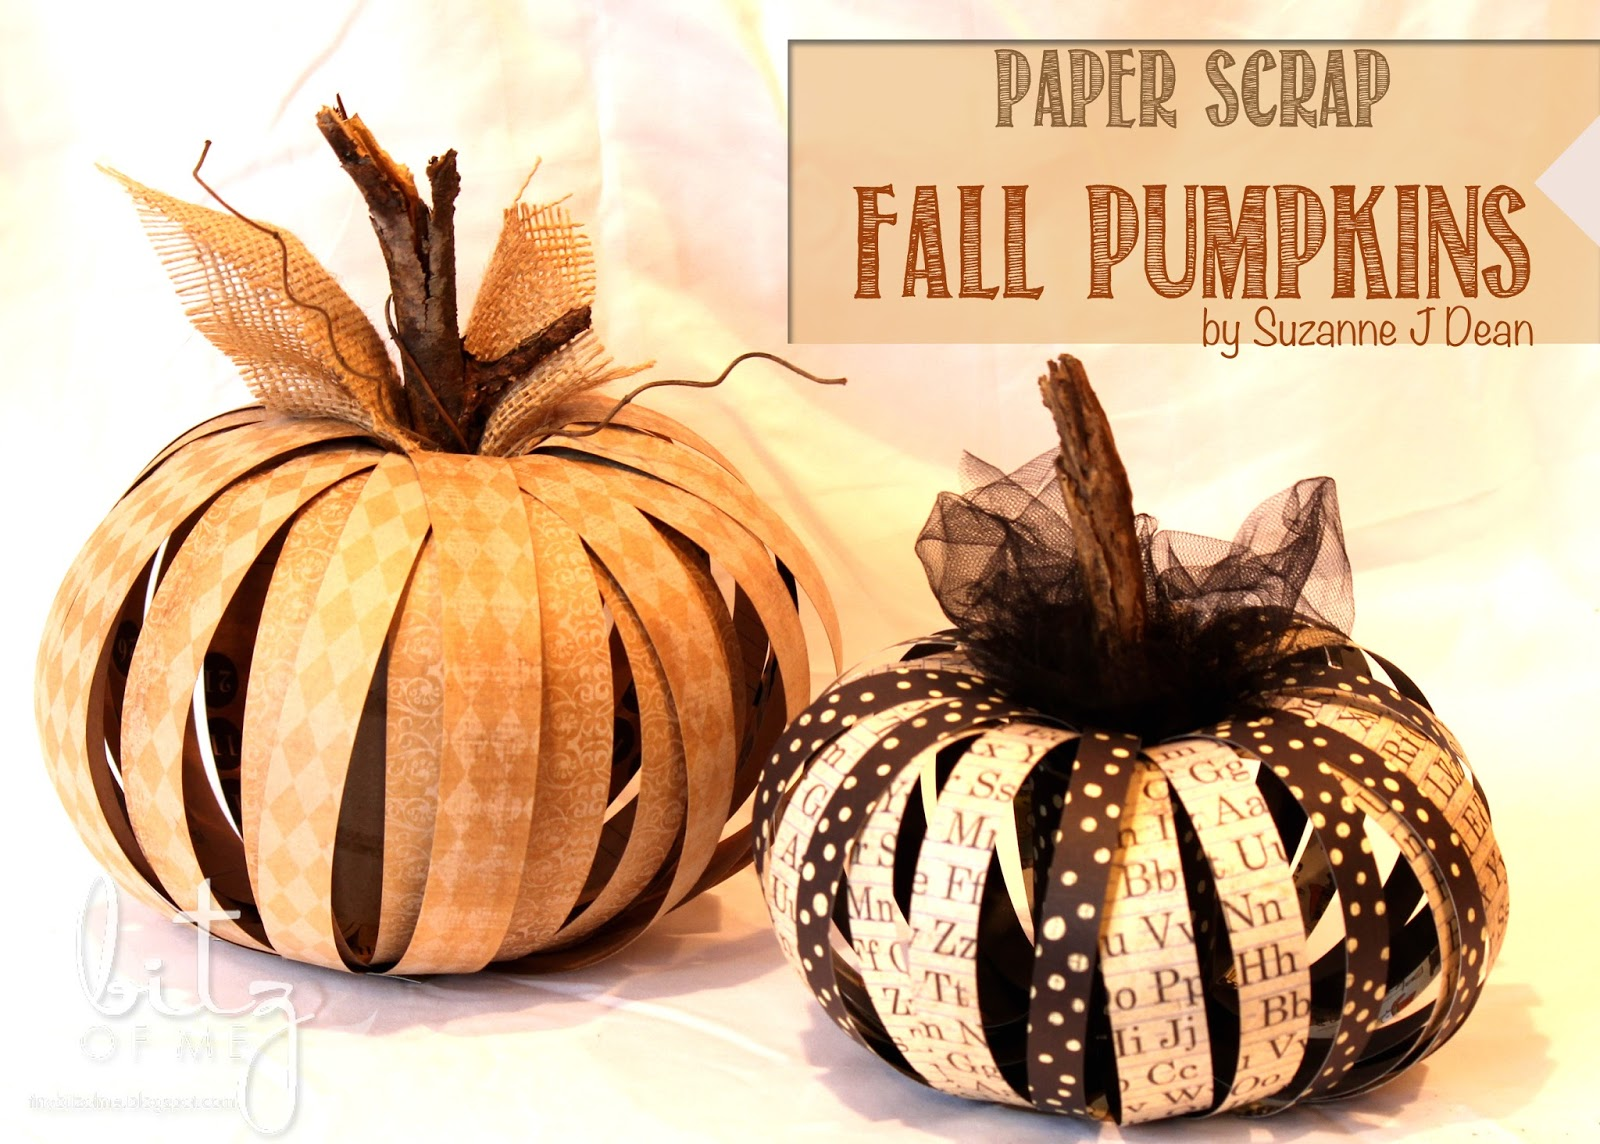 Paper Scrap Fall Pumpkins from Bitz of Me